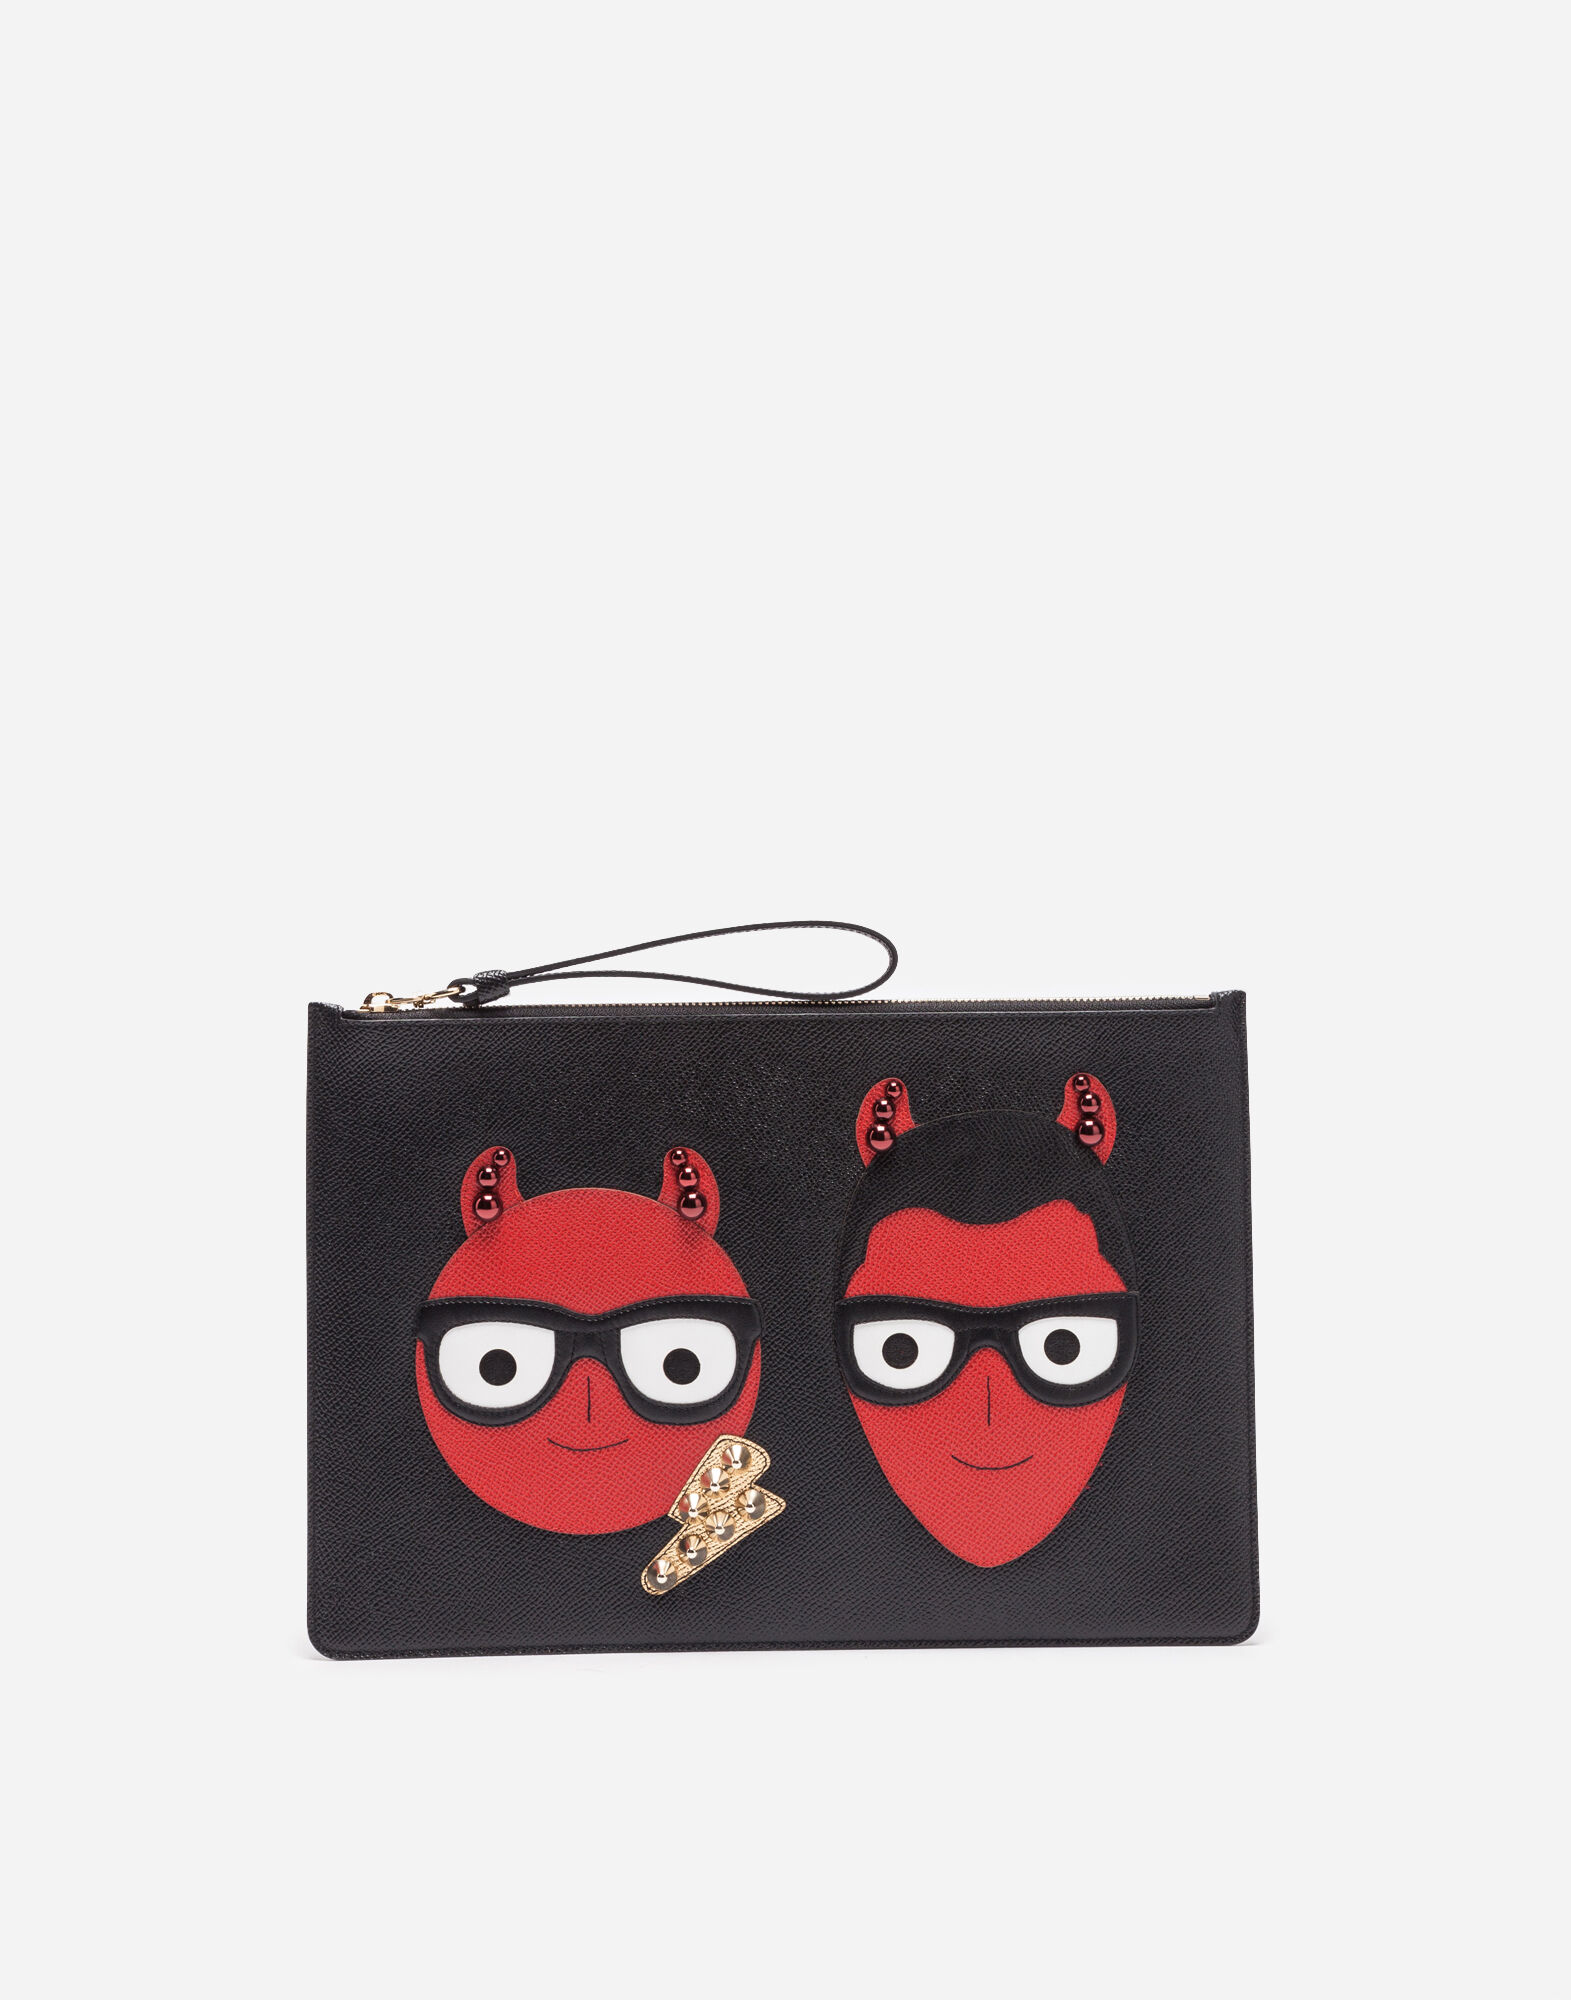 Leather Pouch With Patches Of The Designers in Black